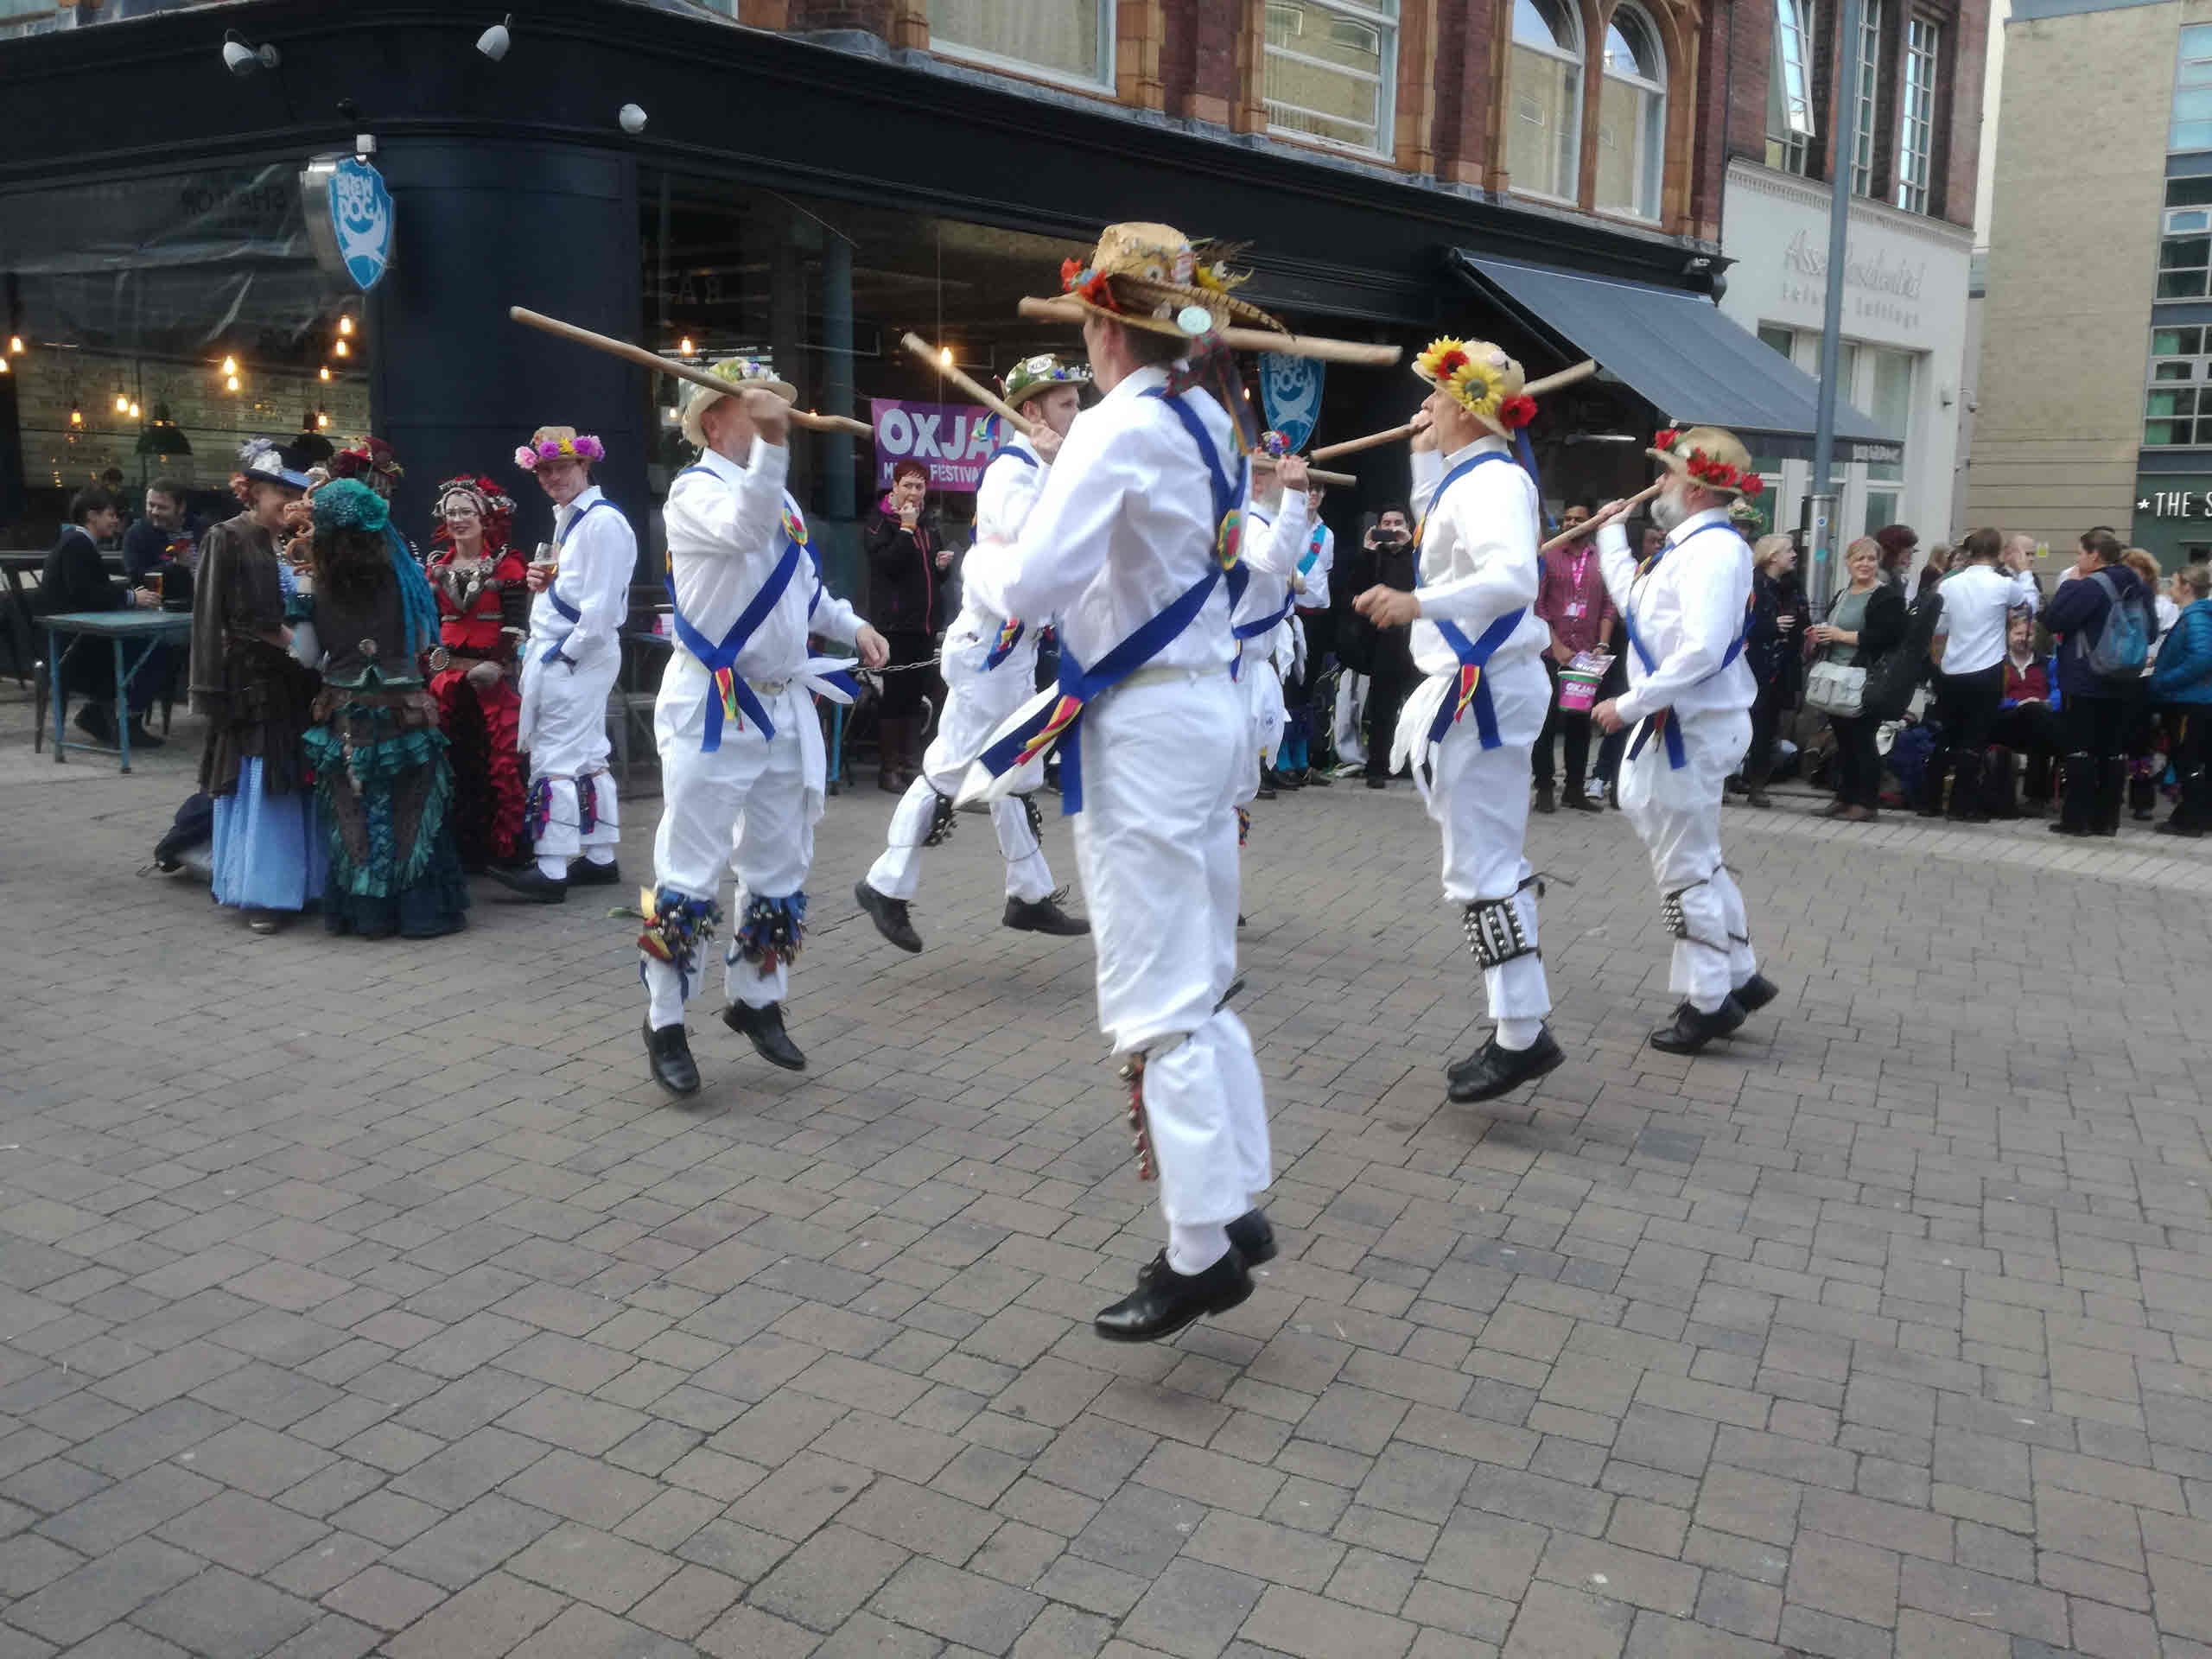 Jockey Dancing on John Bright Street with one of our guest teams Belly Fusion in the background